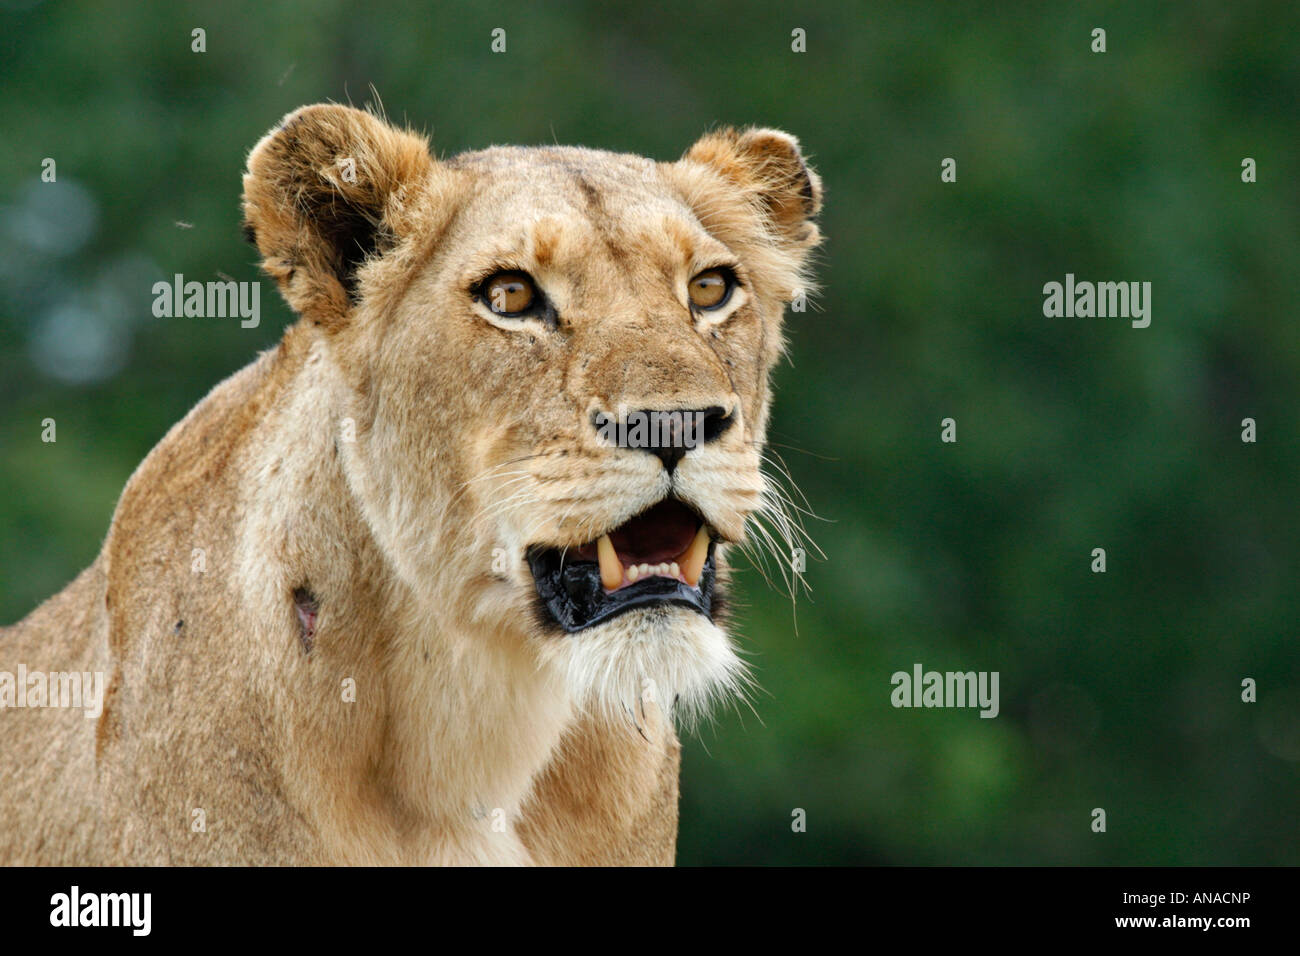 Portrait of a Lioness with mouth open showing sharp teeth - Stock Image